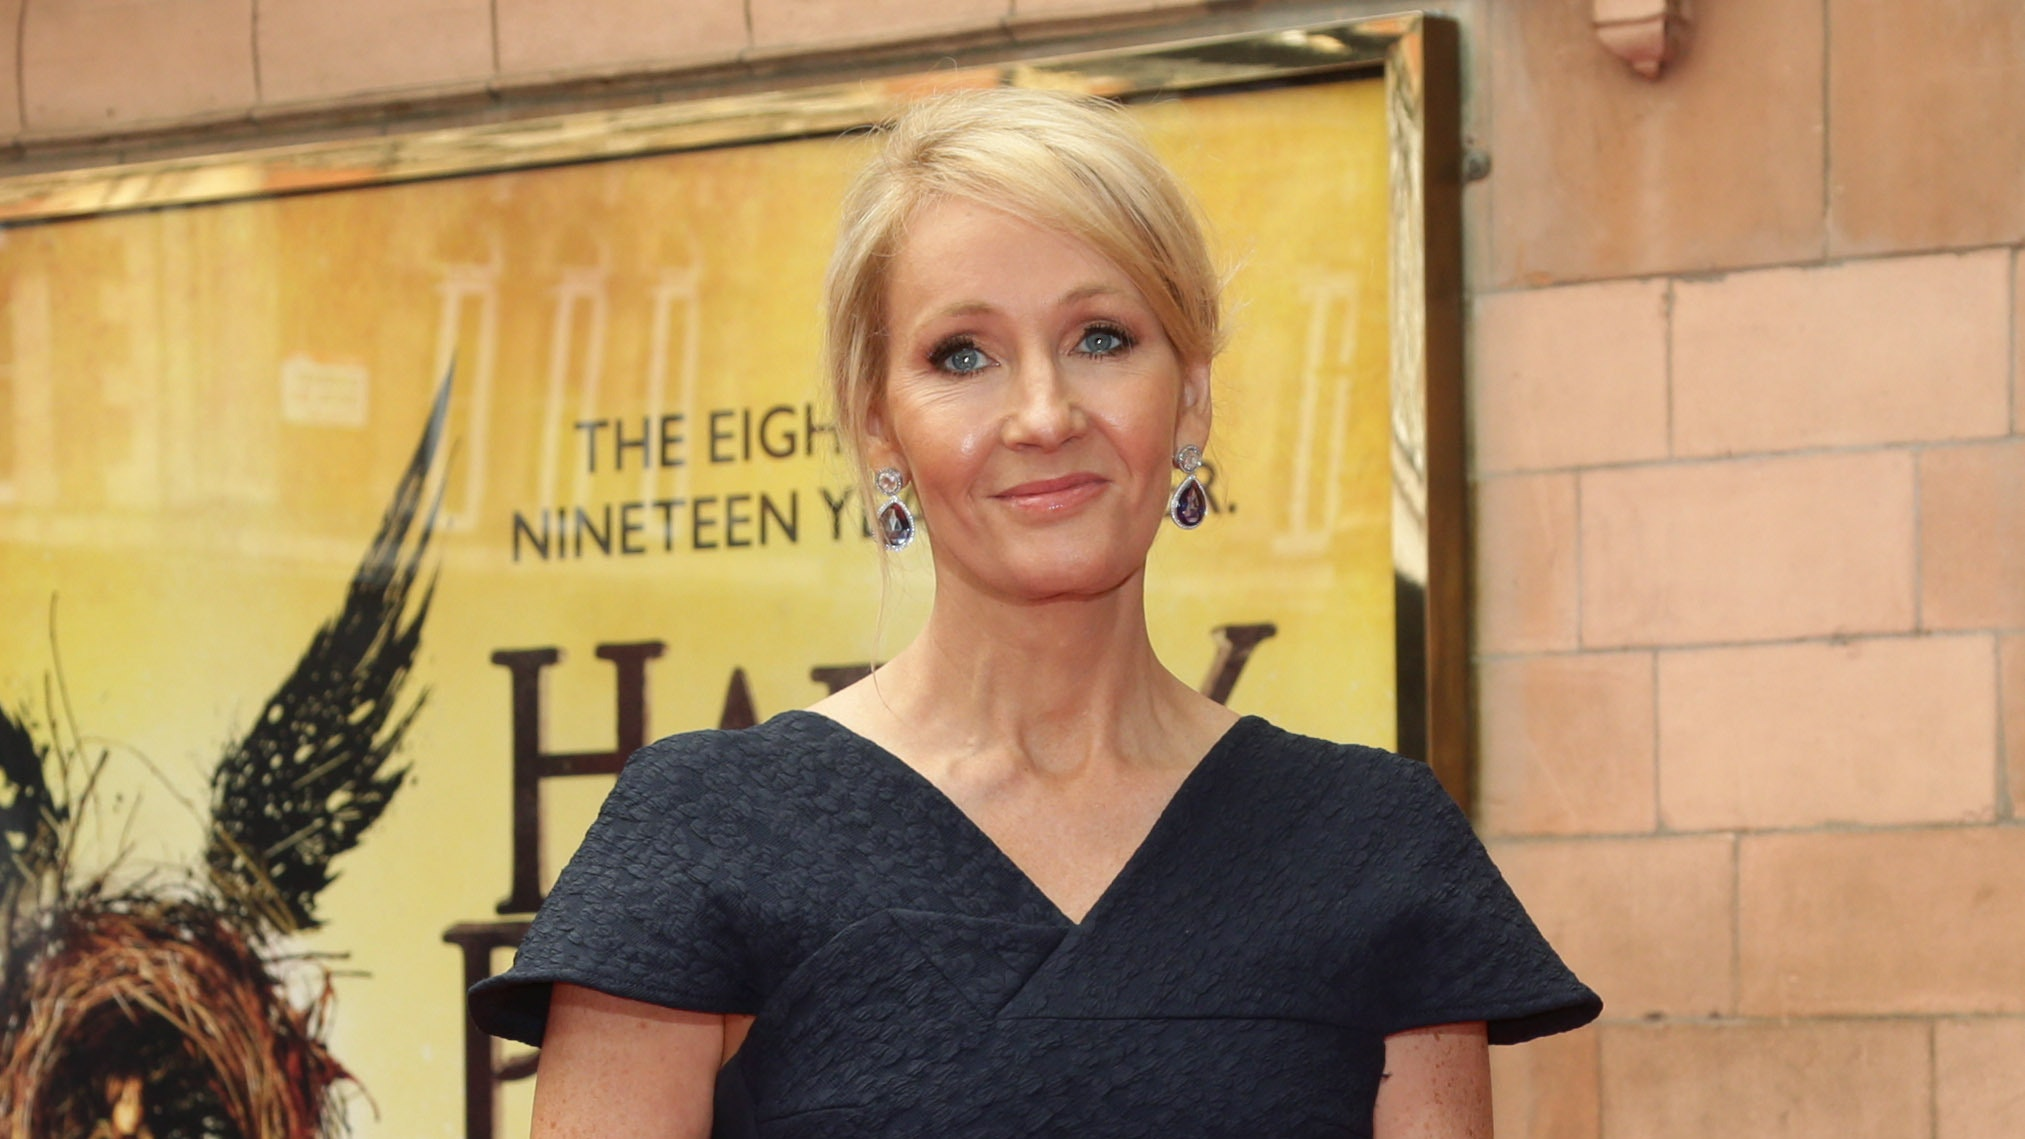 When J.K. Rowling learned Harry Potter would be published